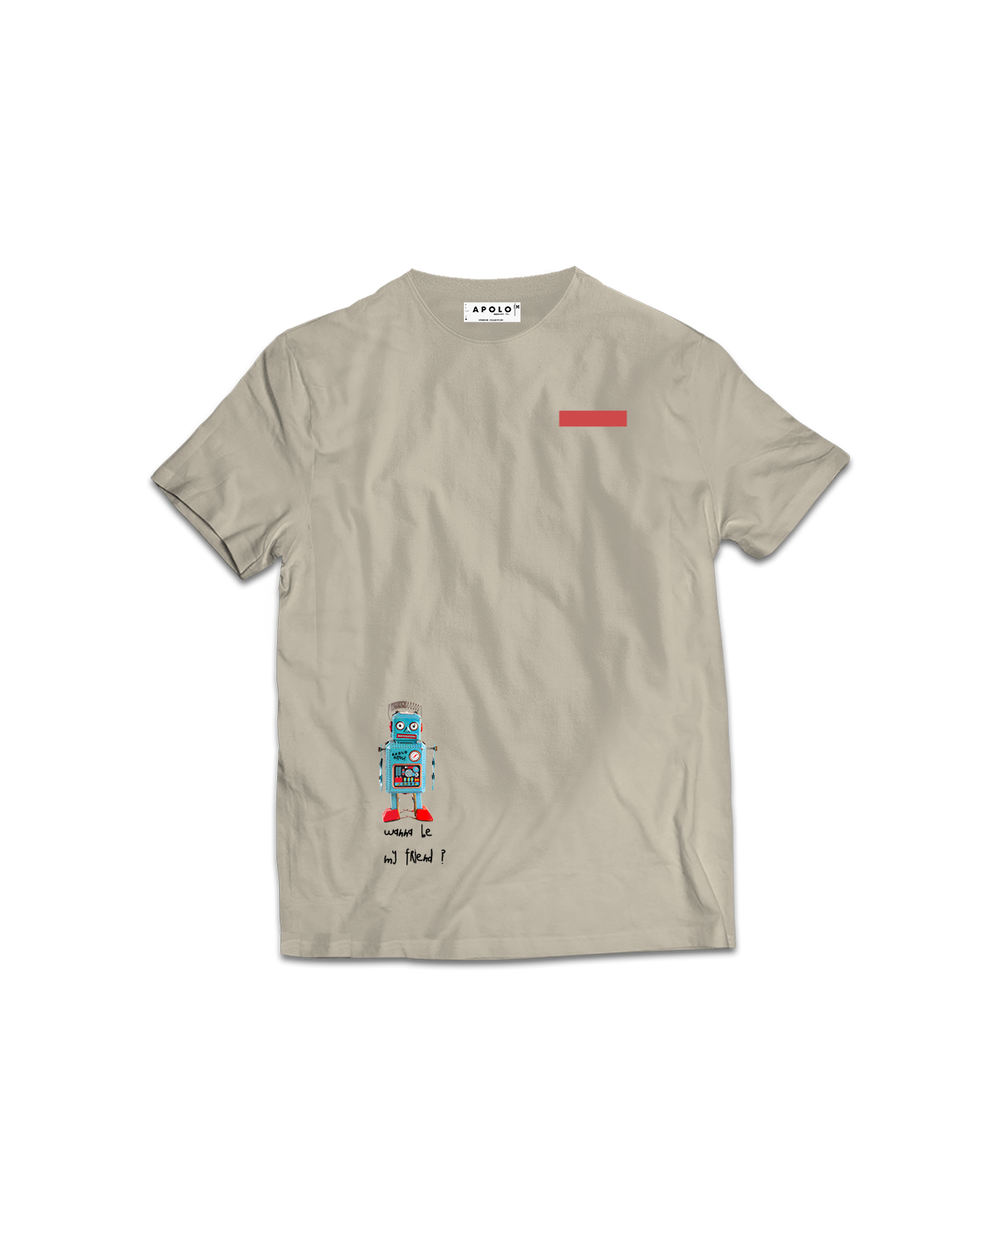 Apolo - Robot Cream Shirt